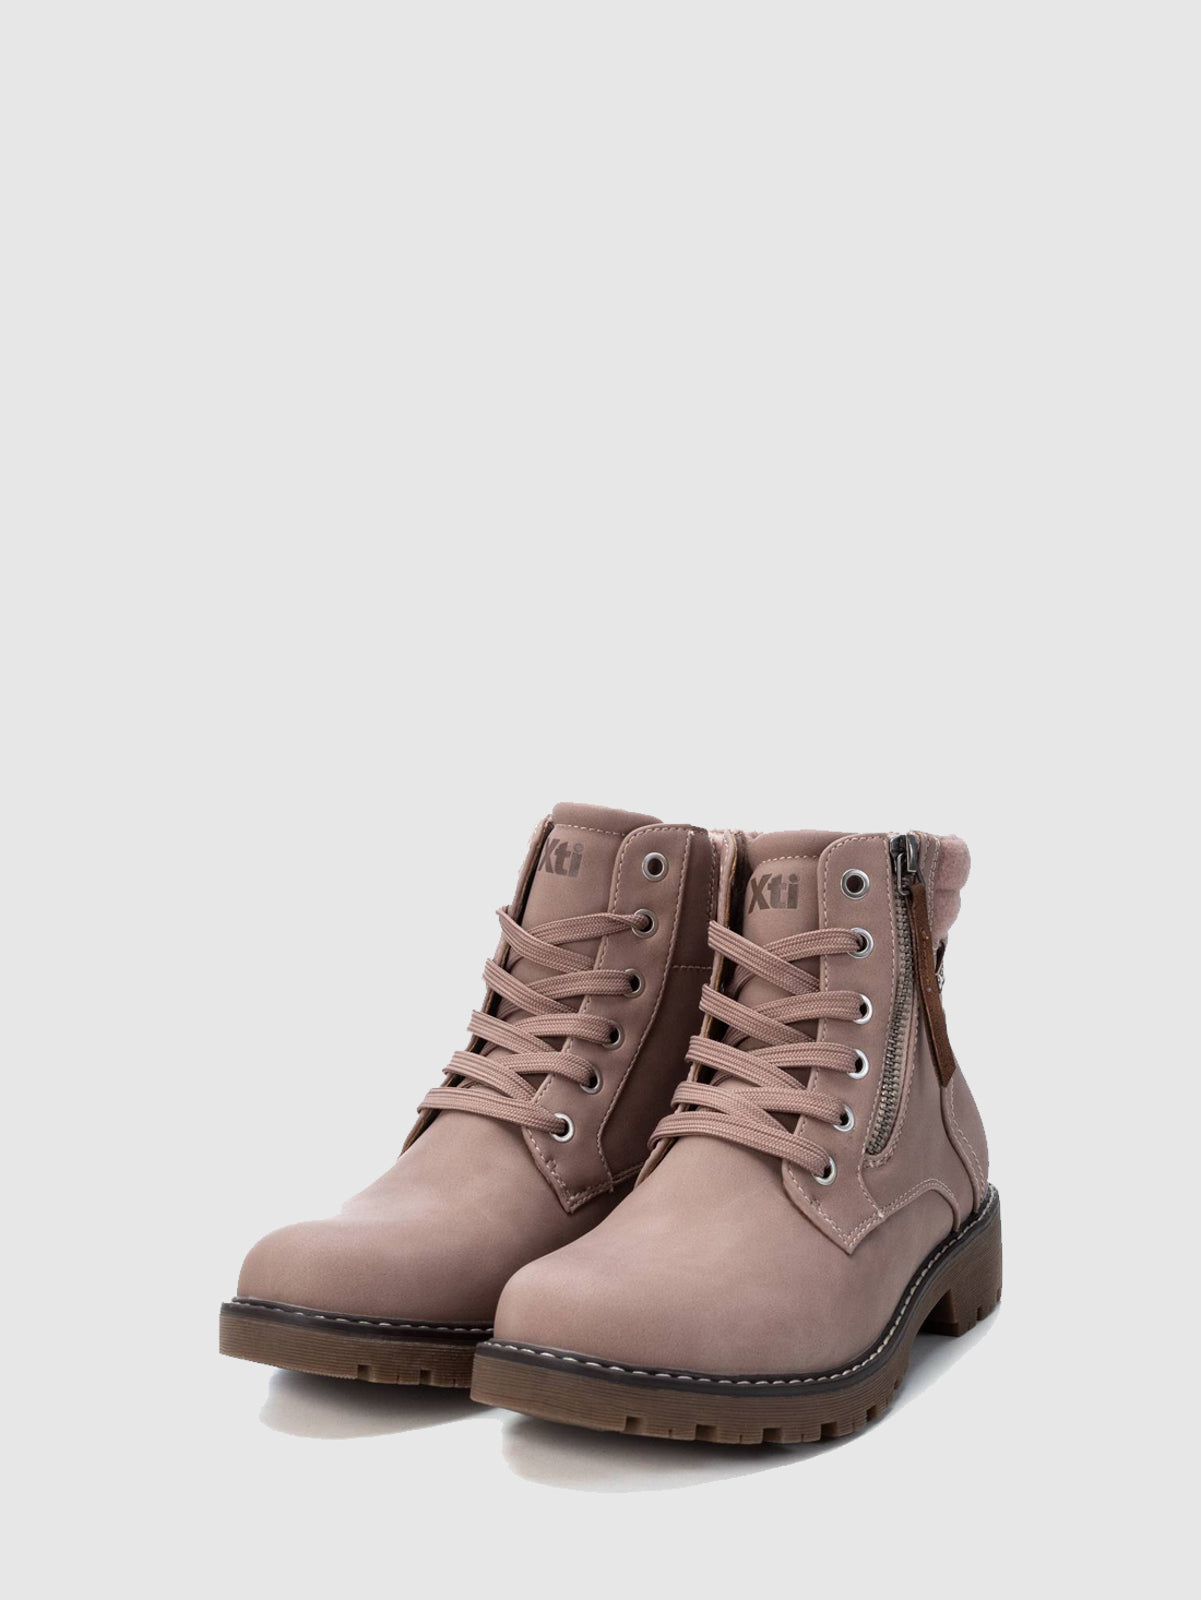 XTI Basic Brown Zip Up Ankle Boots